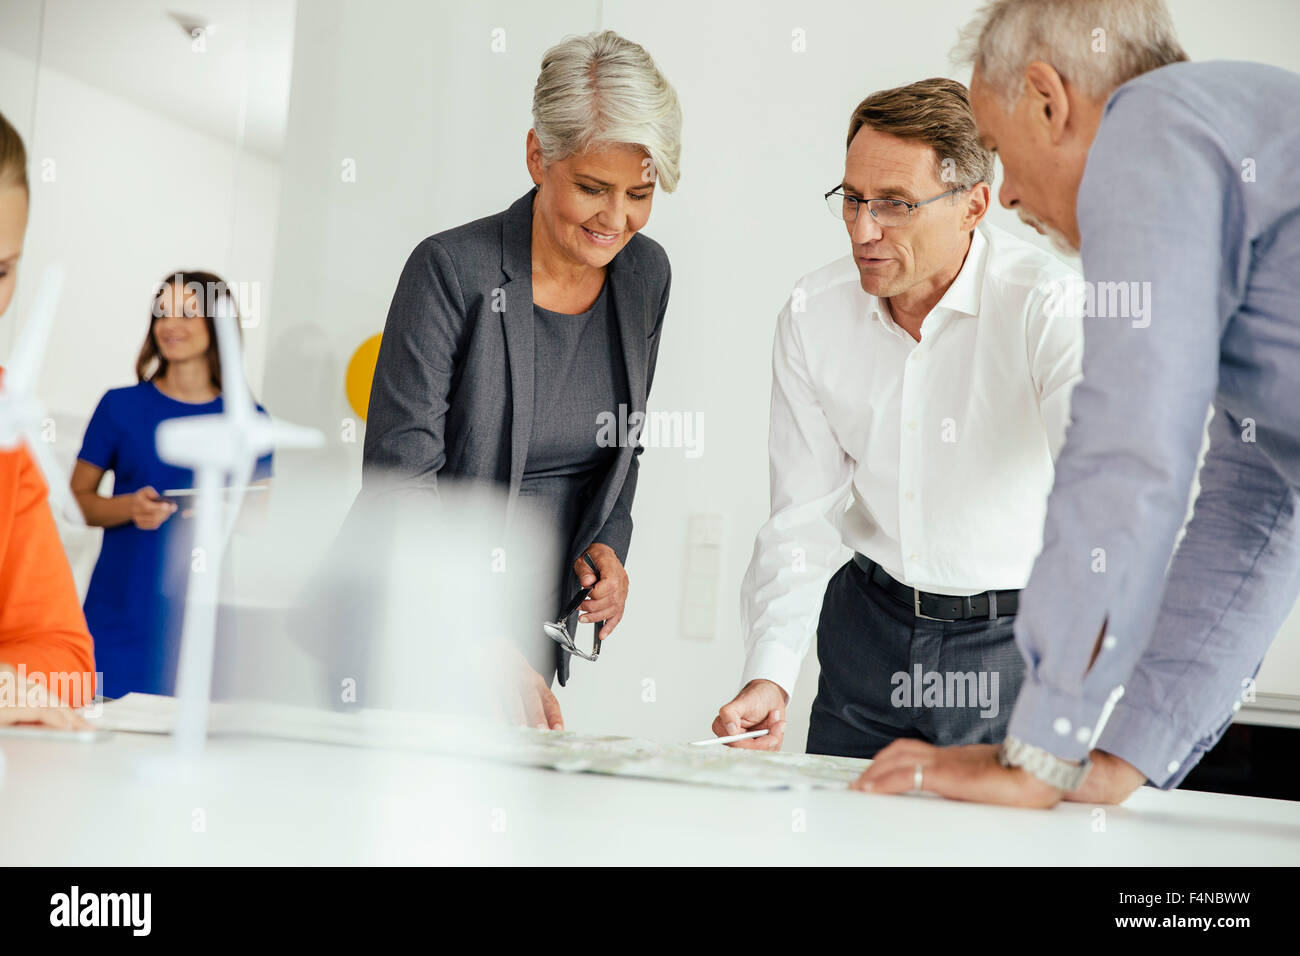 Business people discussing plan with wind turbine model on conference table - Stock Image